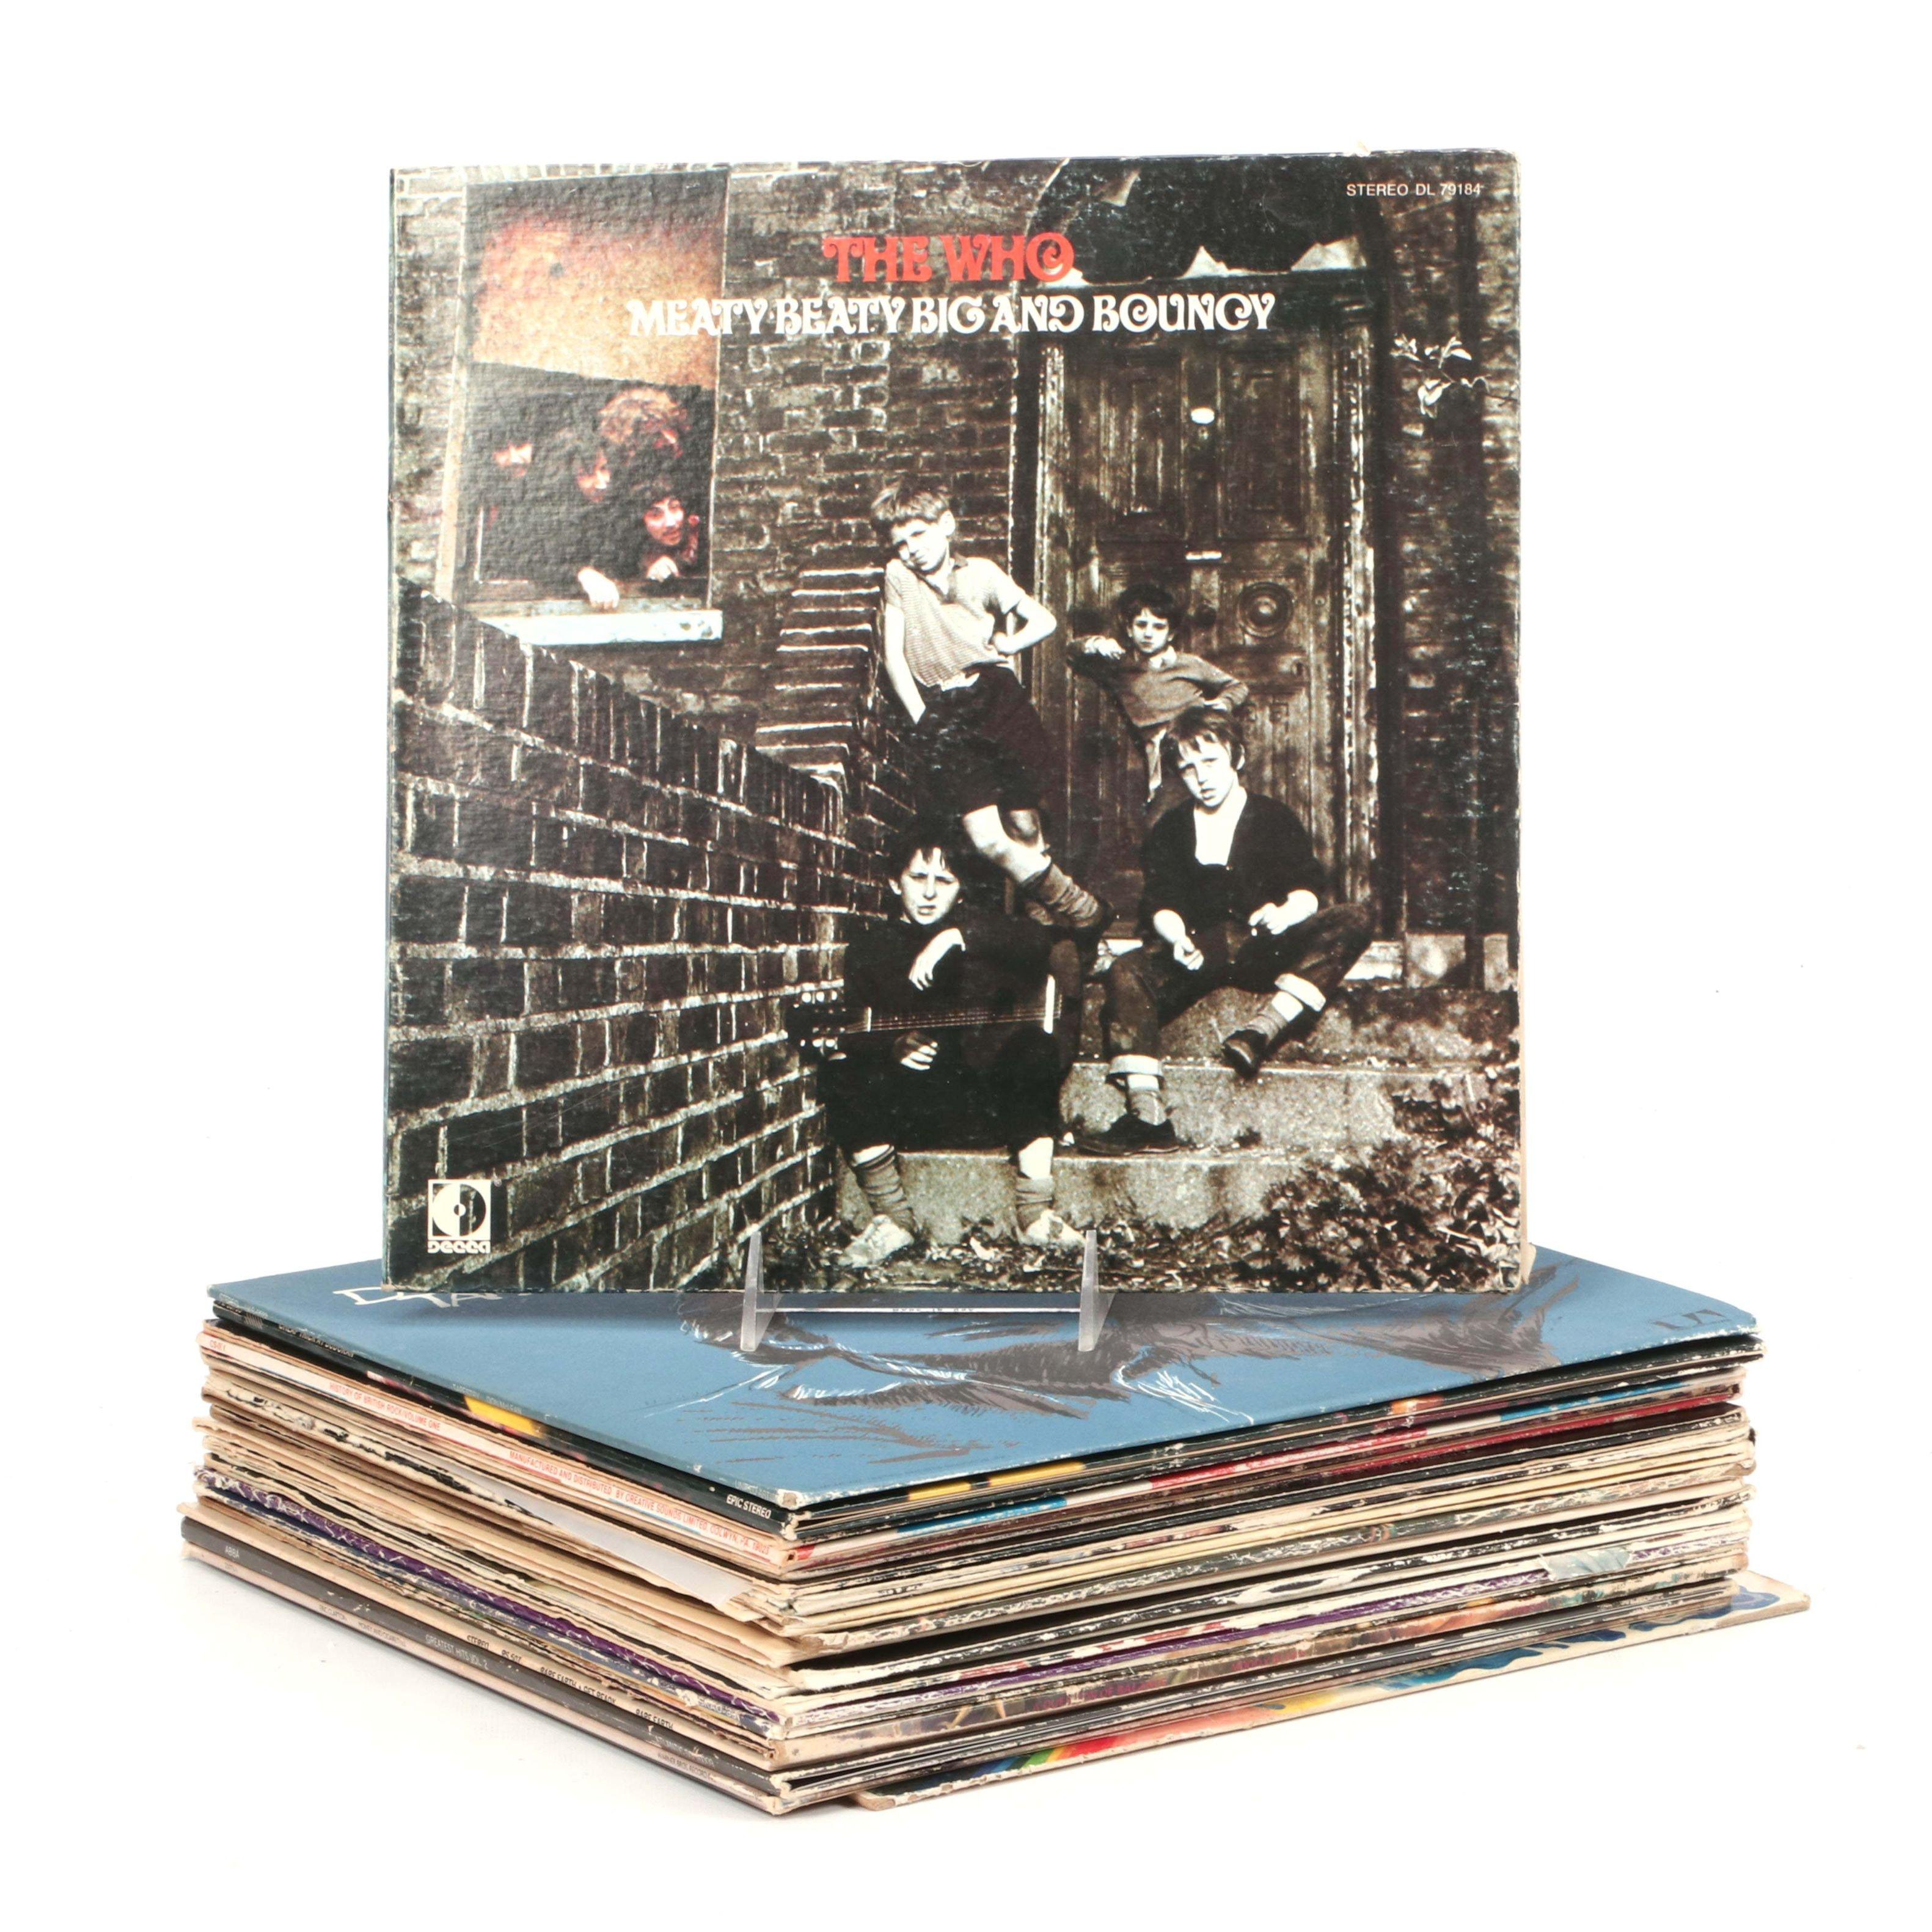 1970s Rock and Classic Rock Records Including The Who, Elton John and More